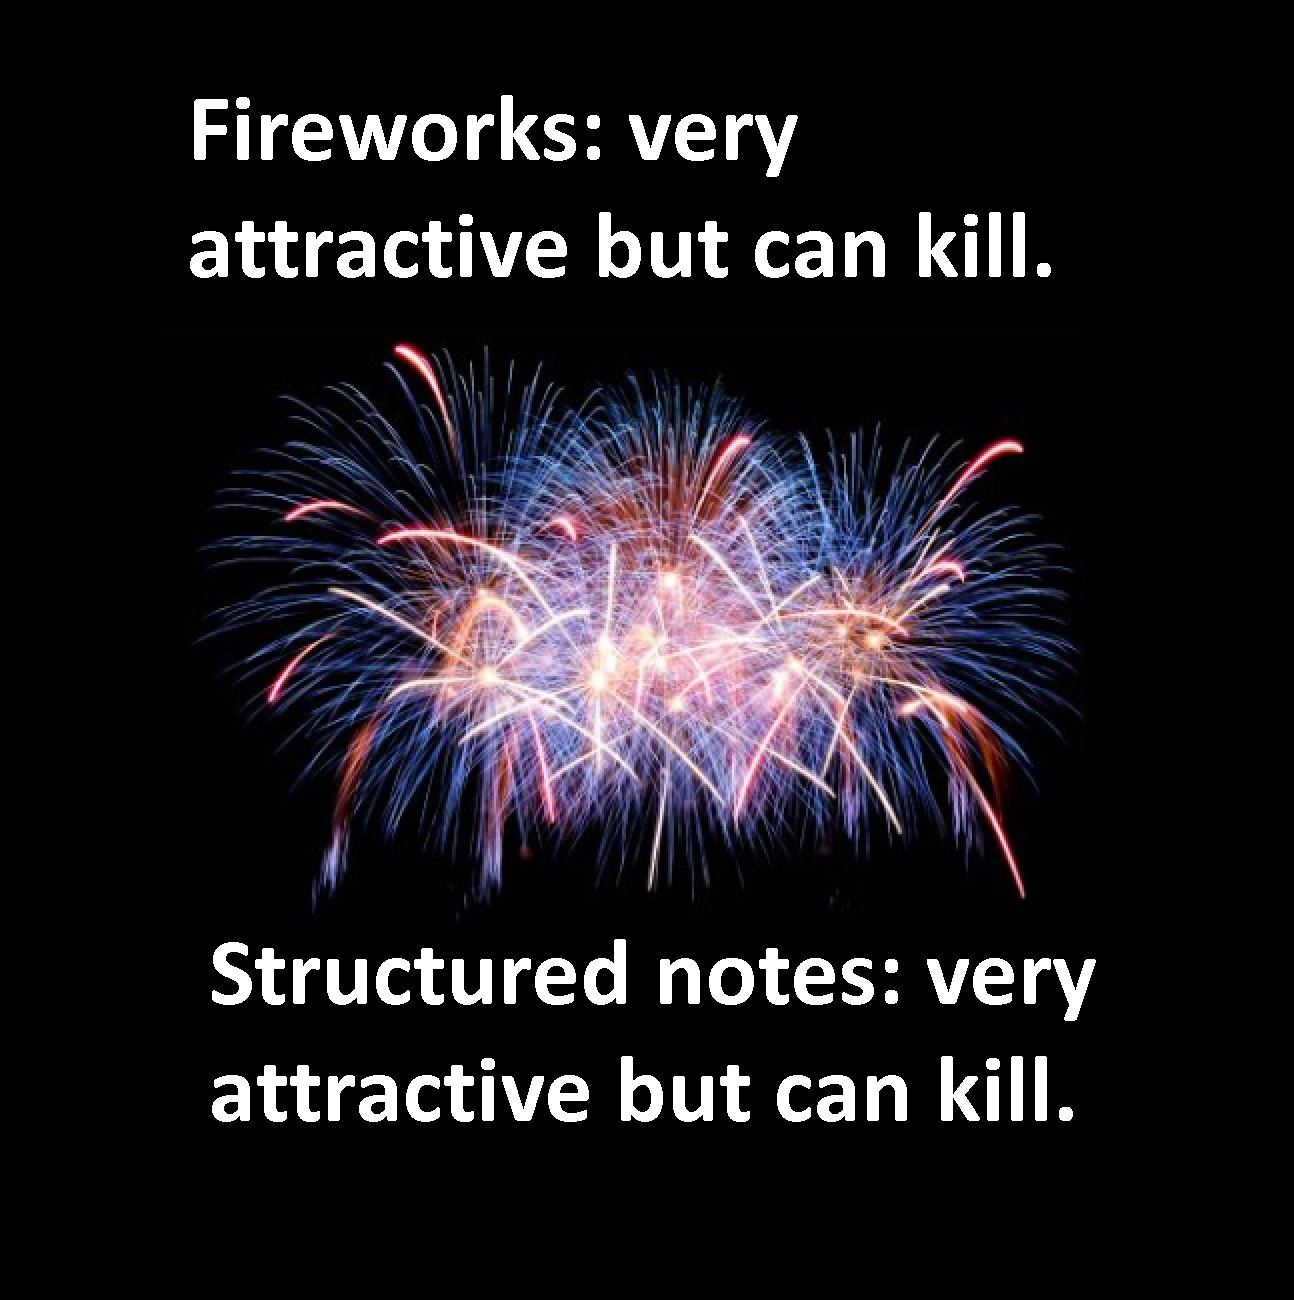 Structured notes are as dangerous as fireworks and should only be used by qualified, licensed professionals.